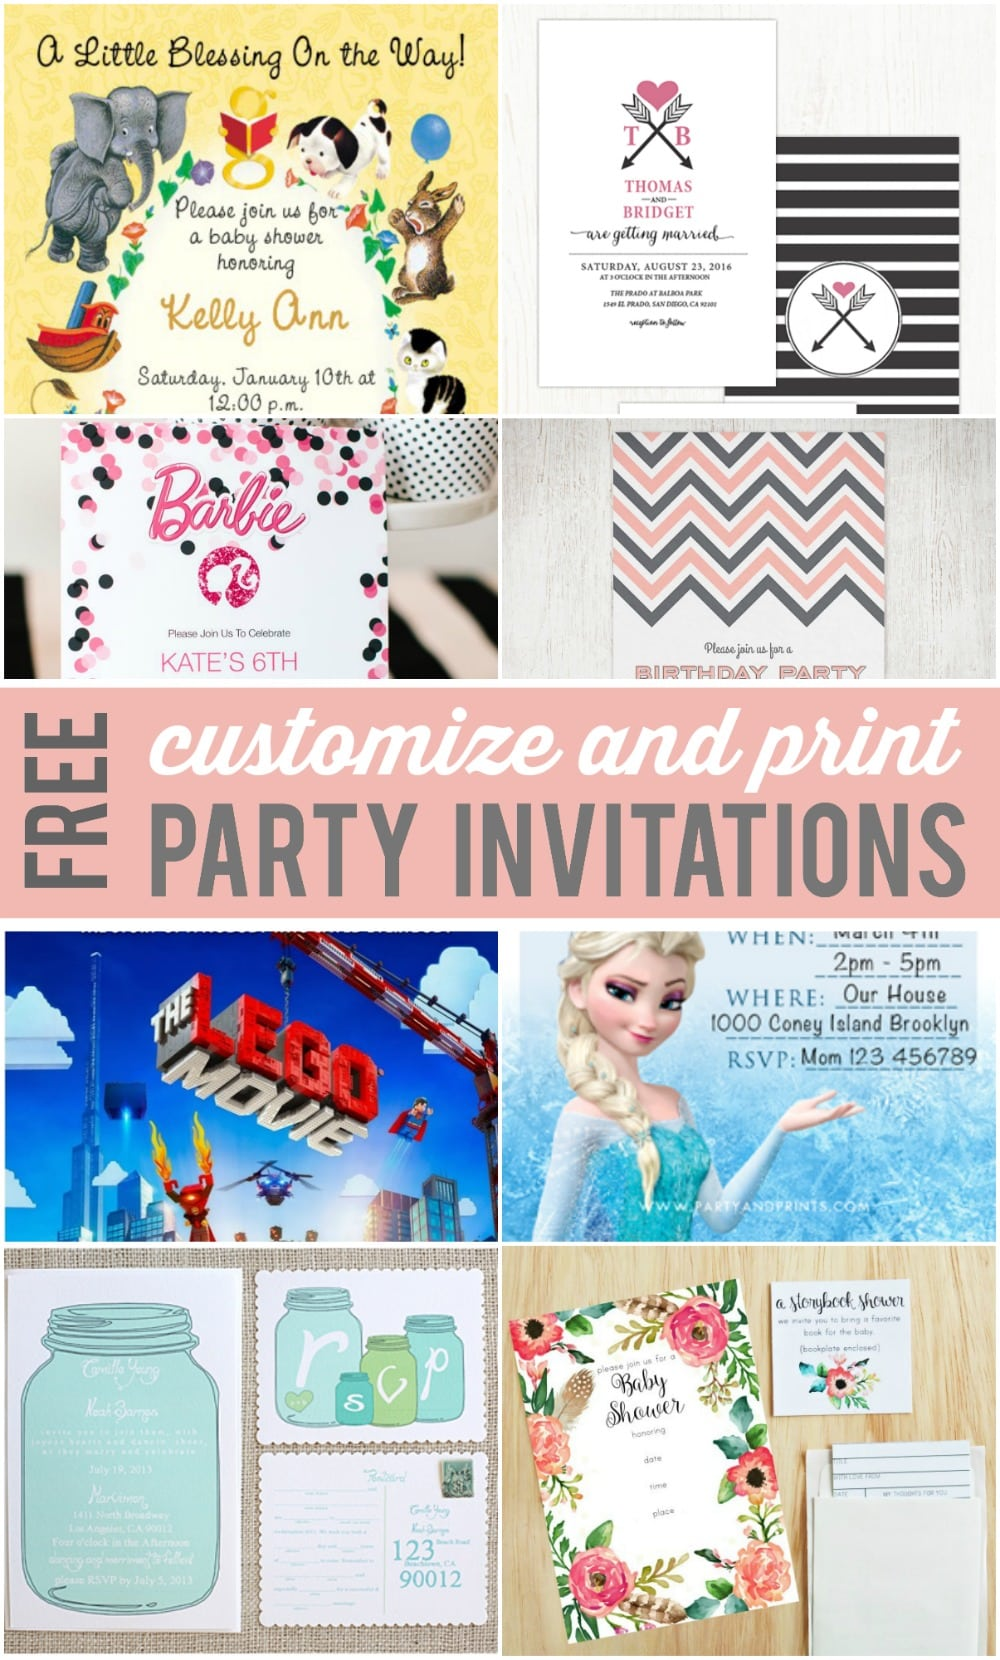 Customizable Party Invitations